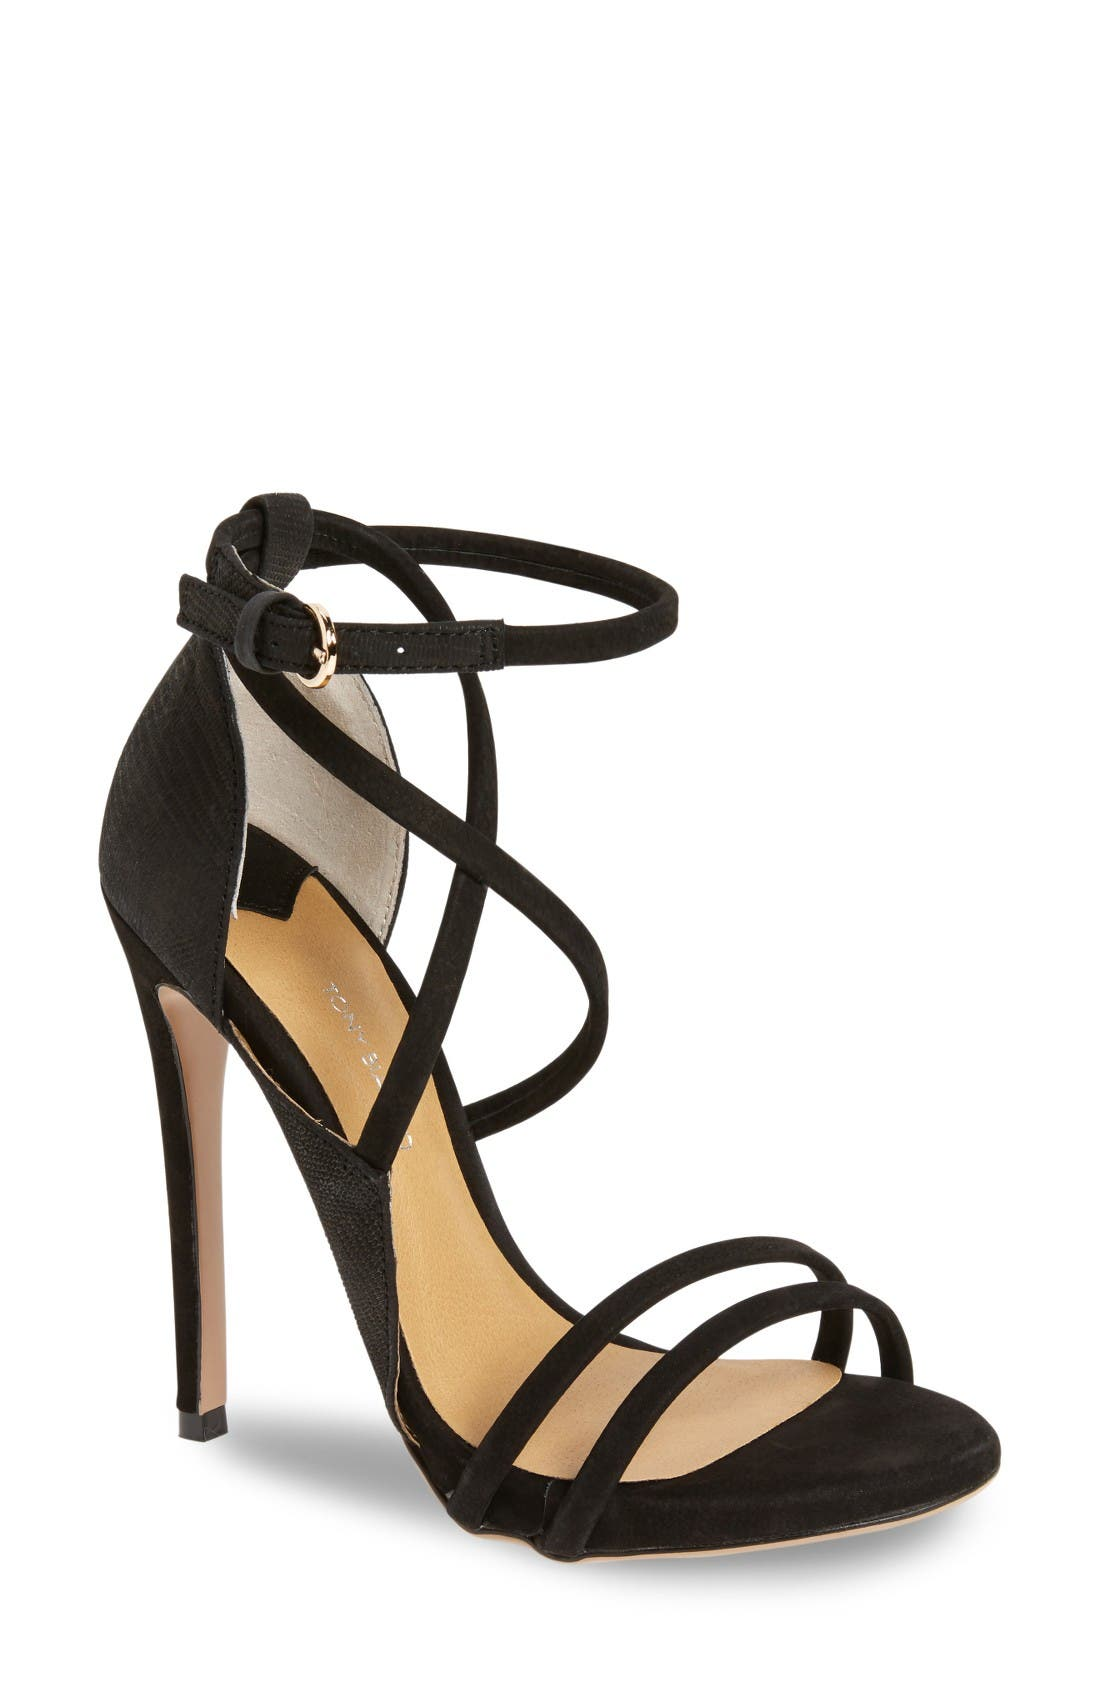 Main Image - Tony Bianco Alita Strappy Sandal (Women)